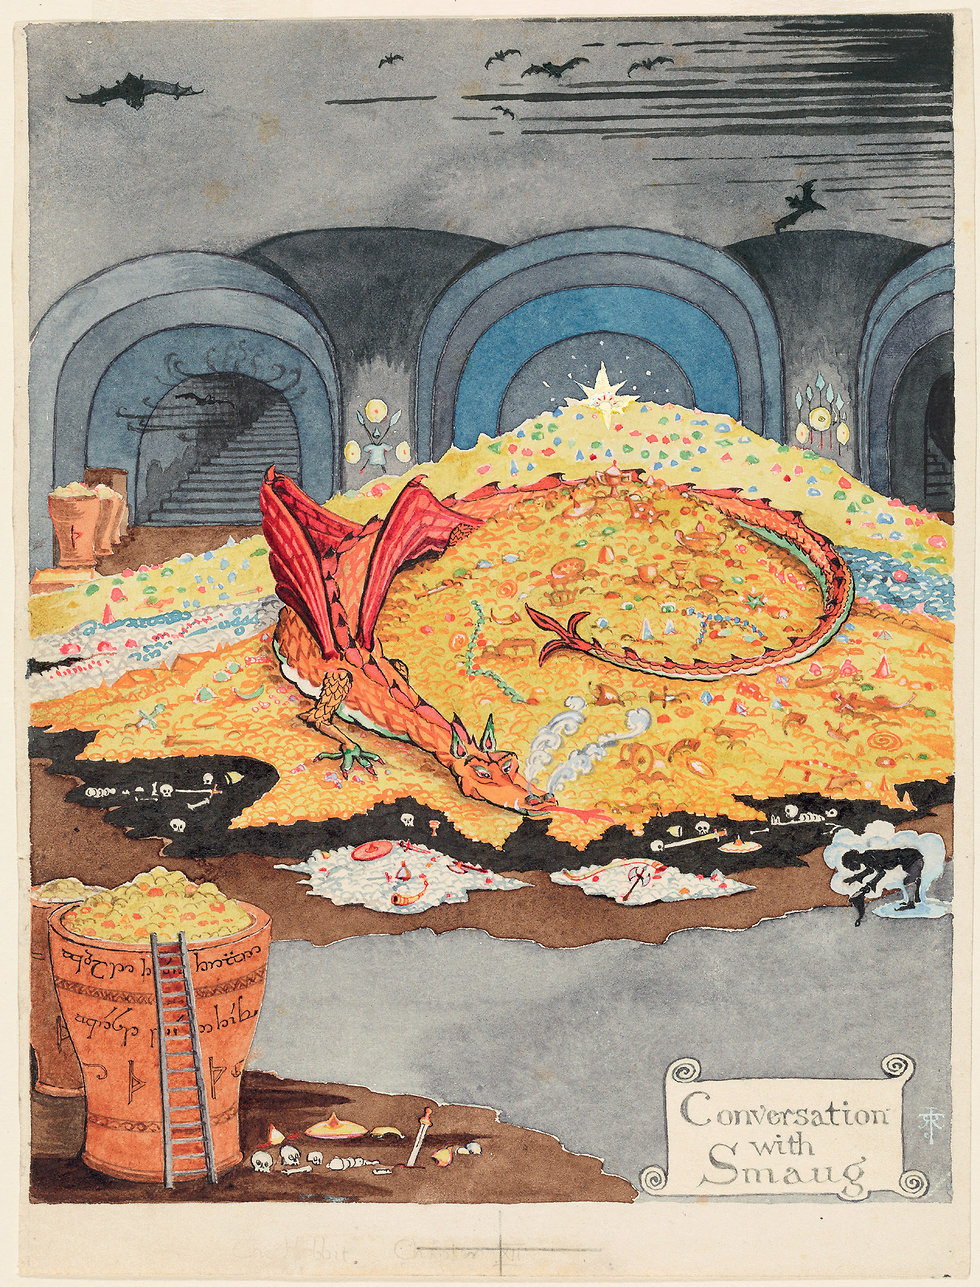 Conversation with Smaug (The Tolkien Estate Limited 1937)